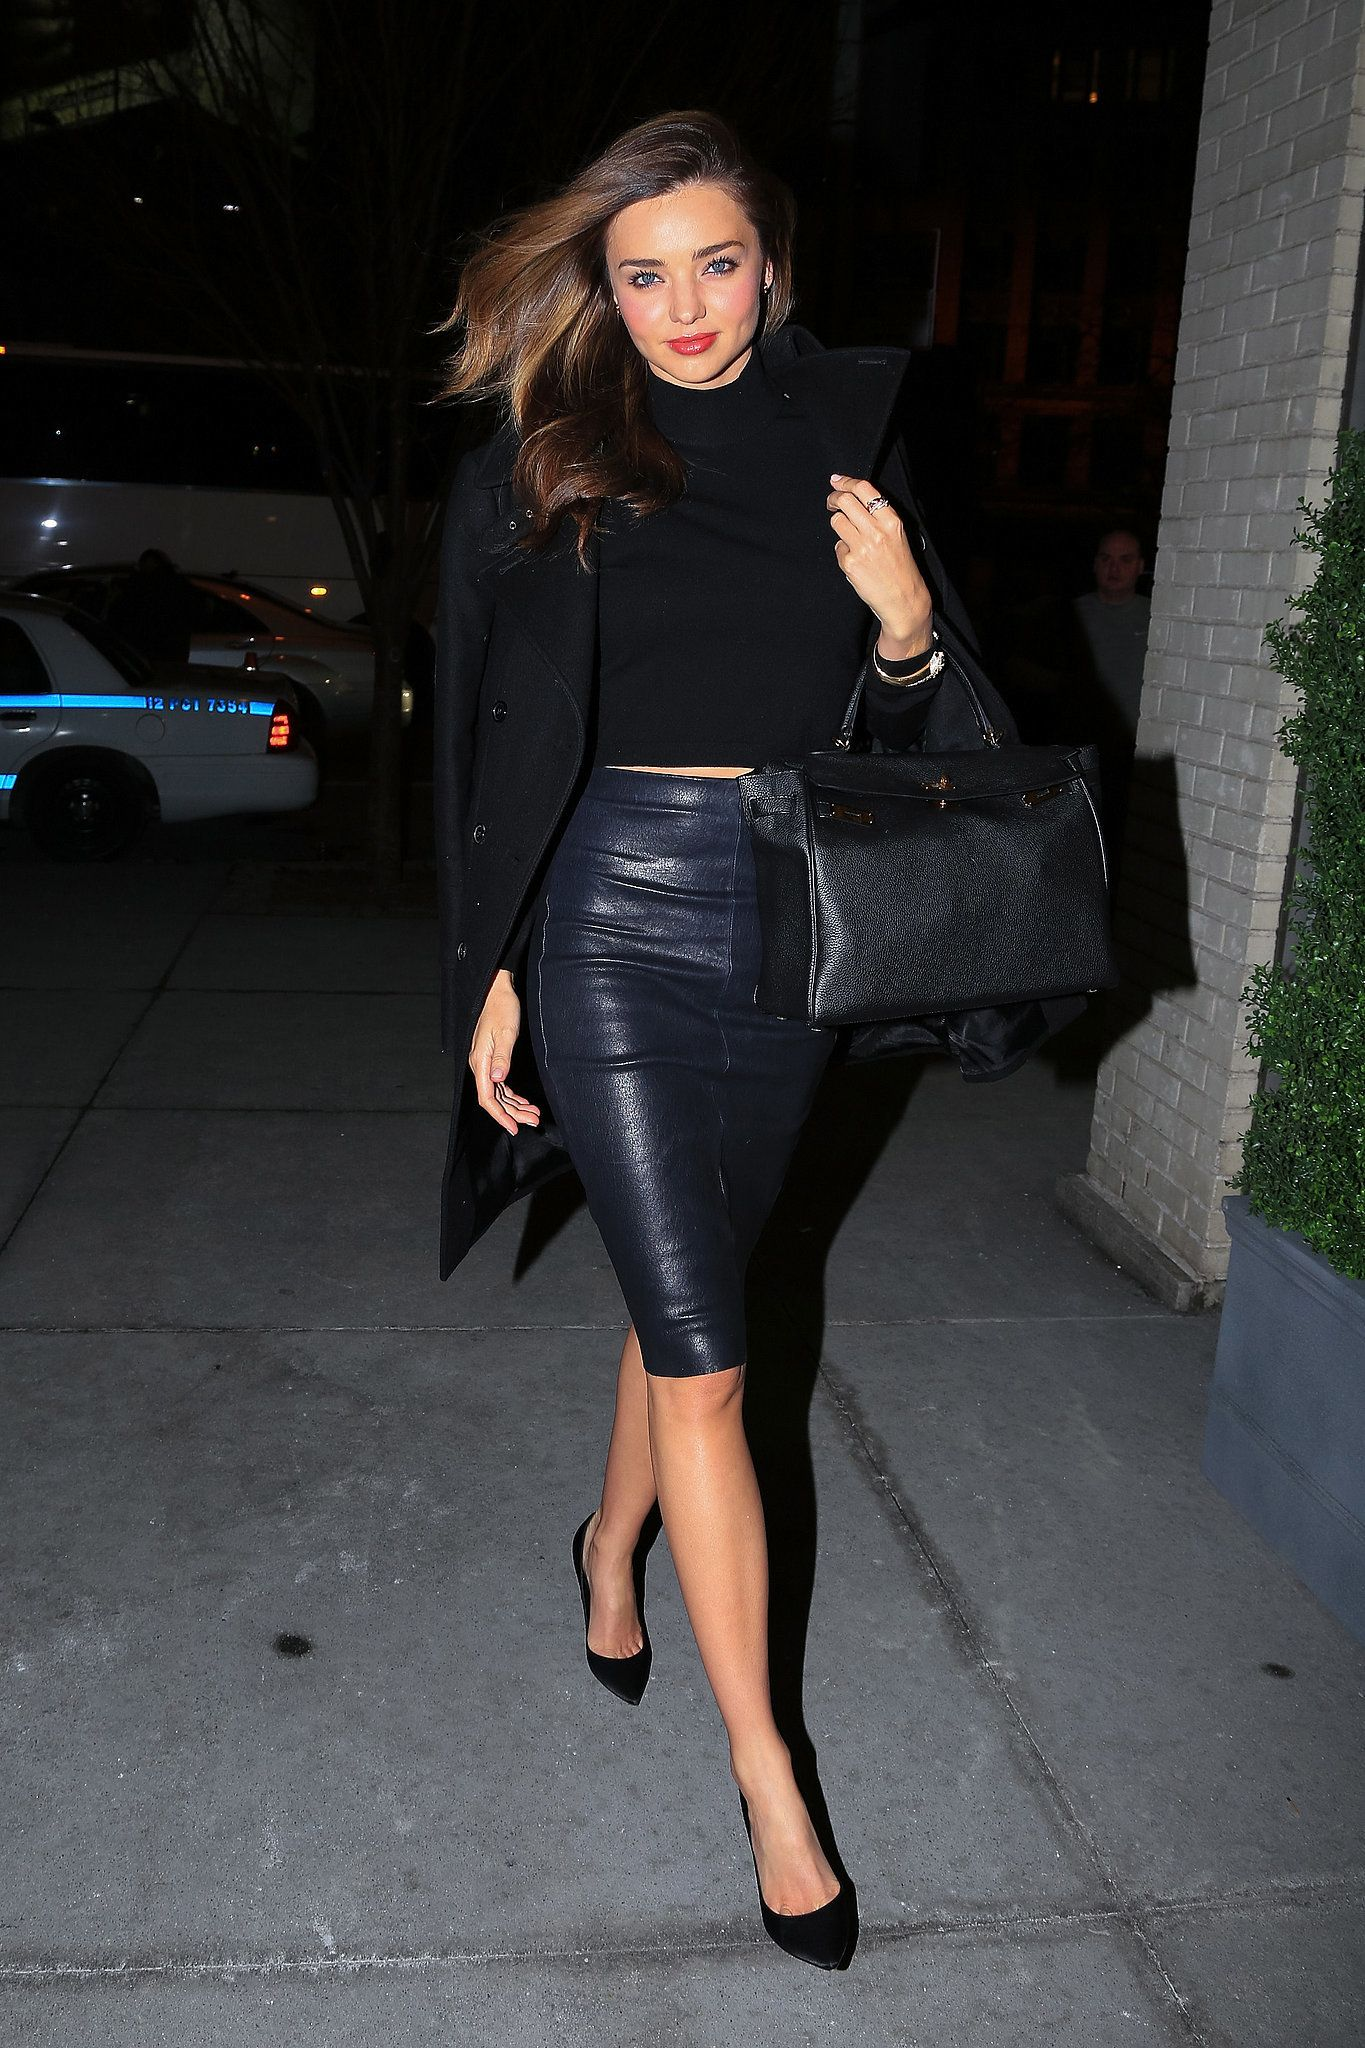 Black Leather Skirt And Top | Jill Dress